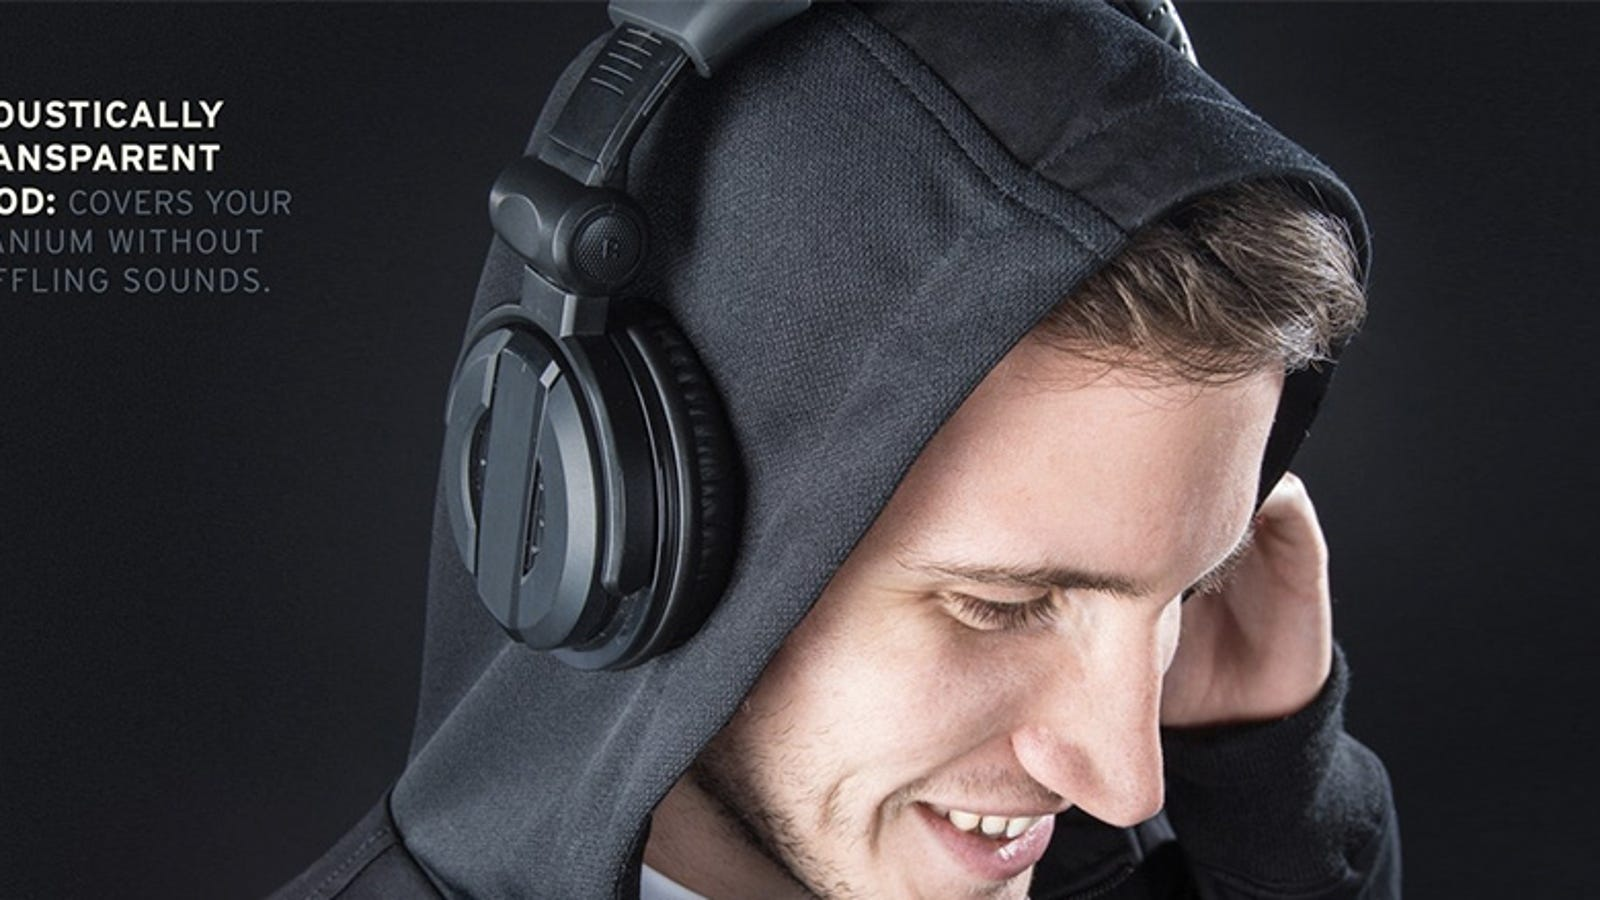 headphones wireless philips - A Hoodie Made From Speaker Fabric Won't Muffle Your Headphones